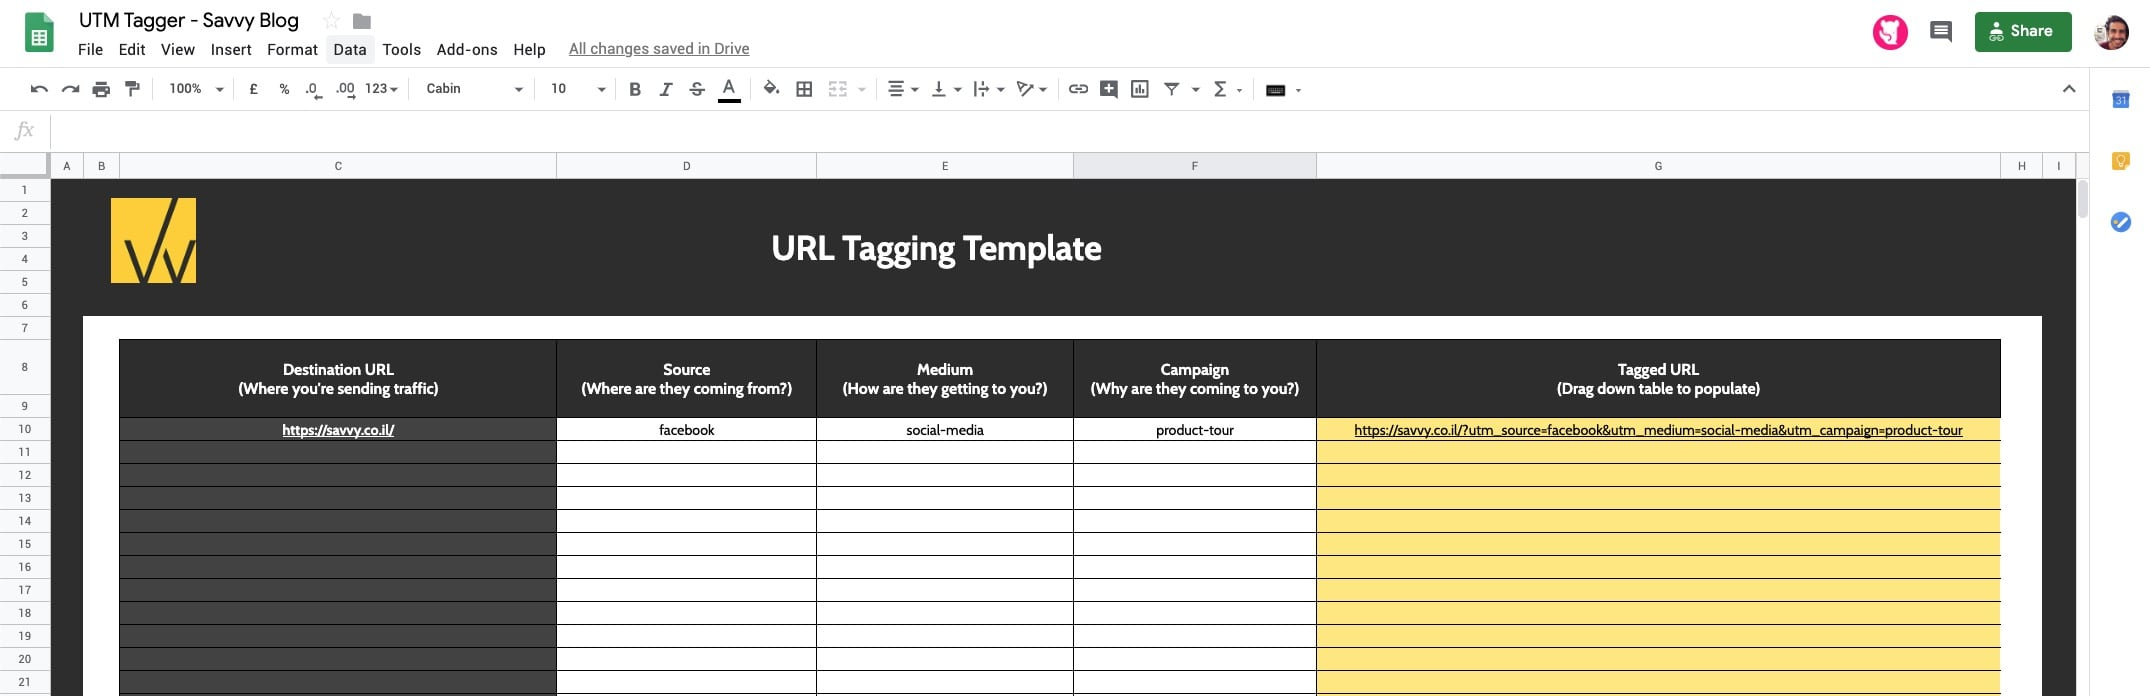 UTM Tagging Template